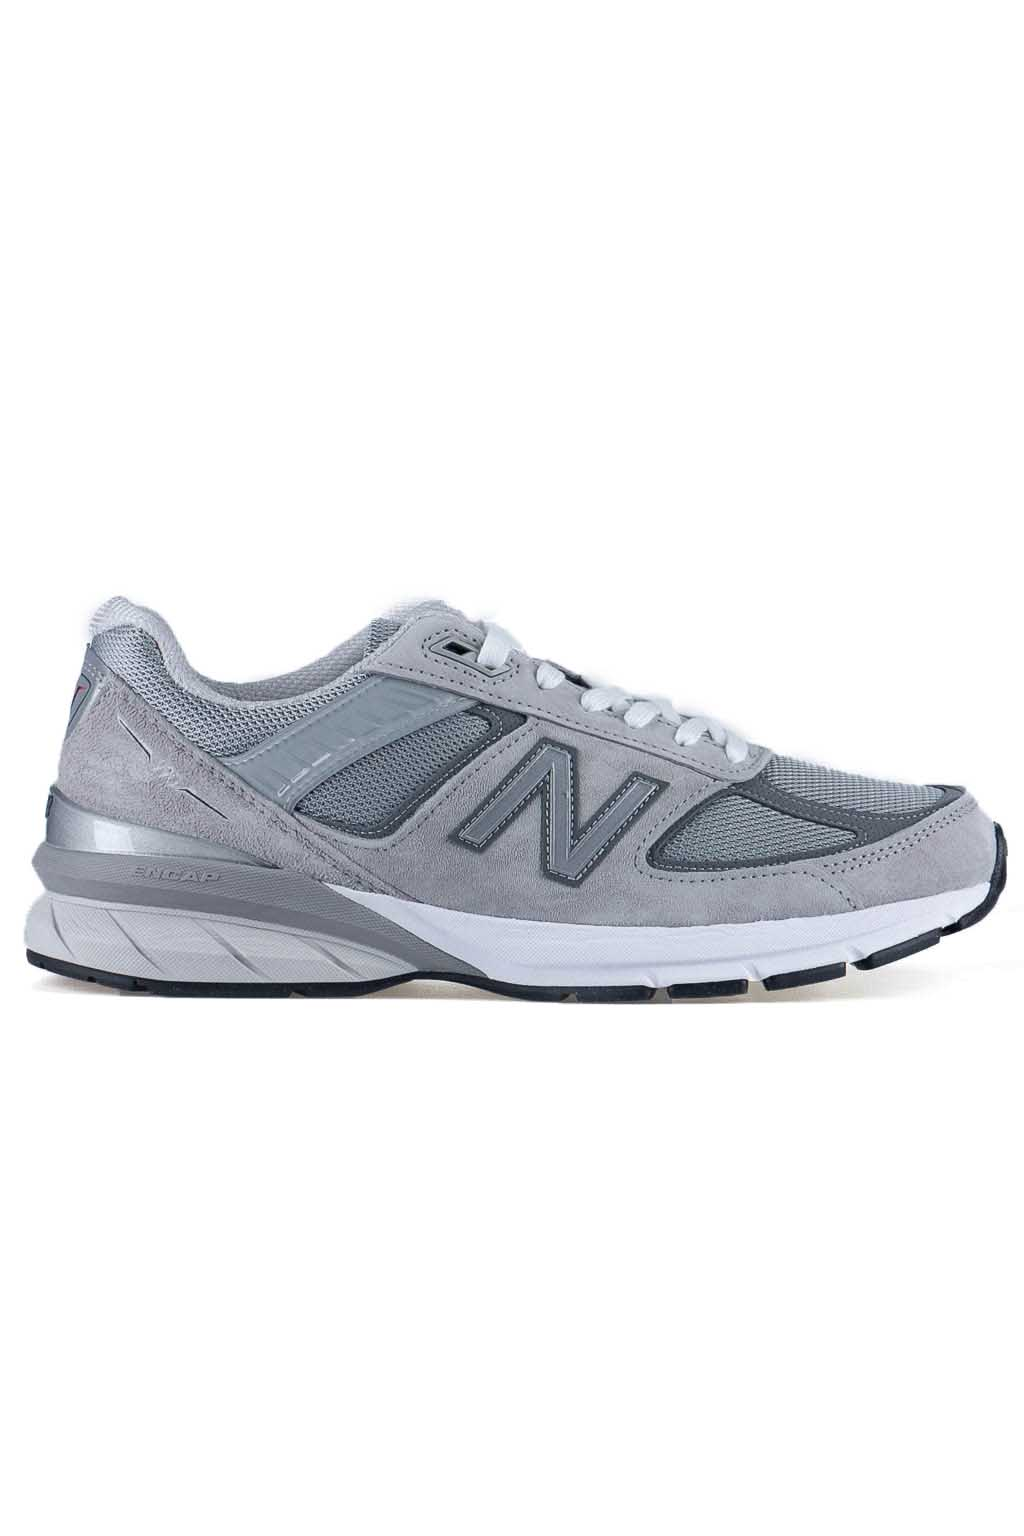 New Balance M990GL5 - Made in USA